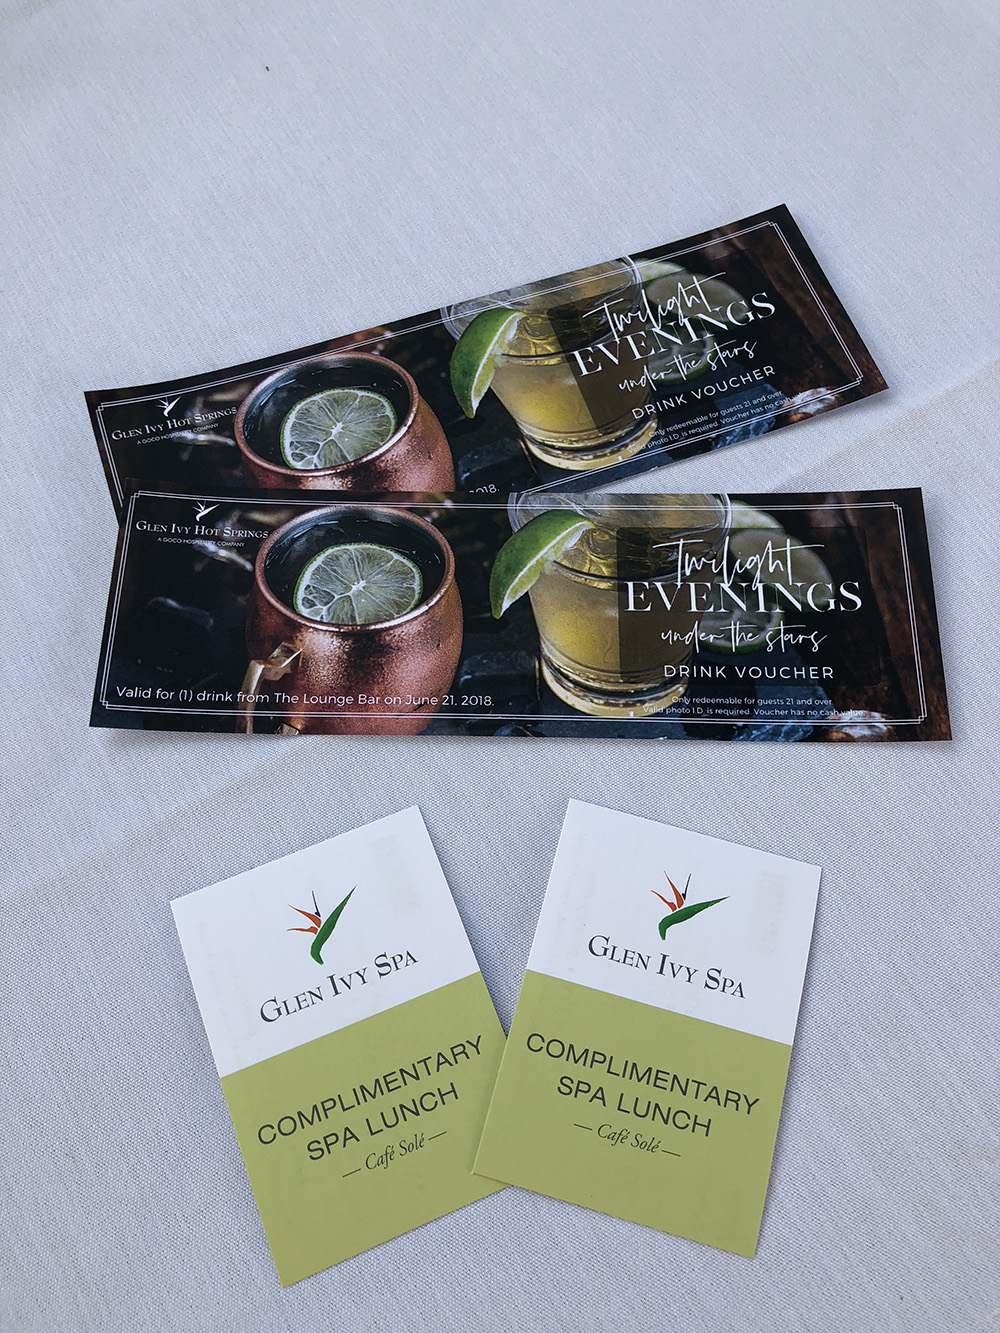 We enjoyed a lovely dinner and drinks at the spa's Twilight Evenings Under the Stars, a popular weekly event.